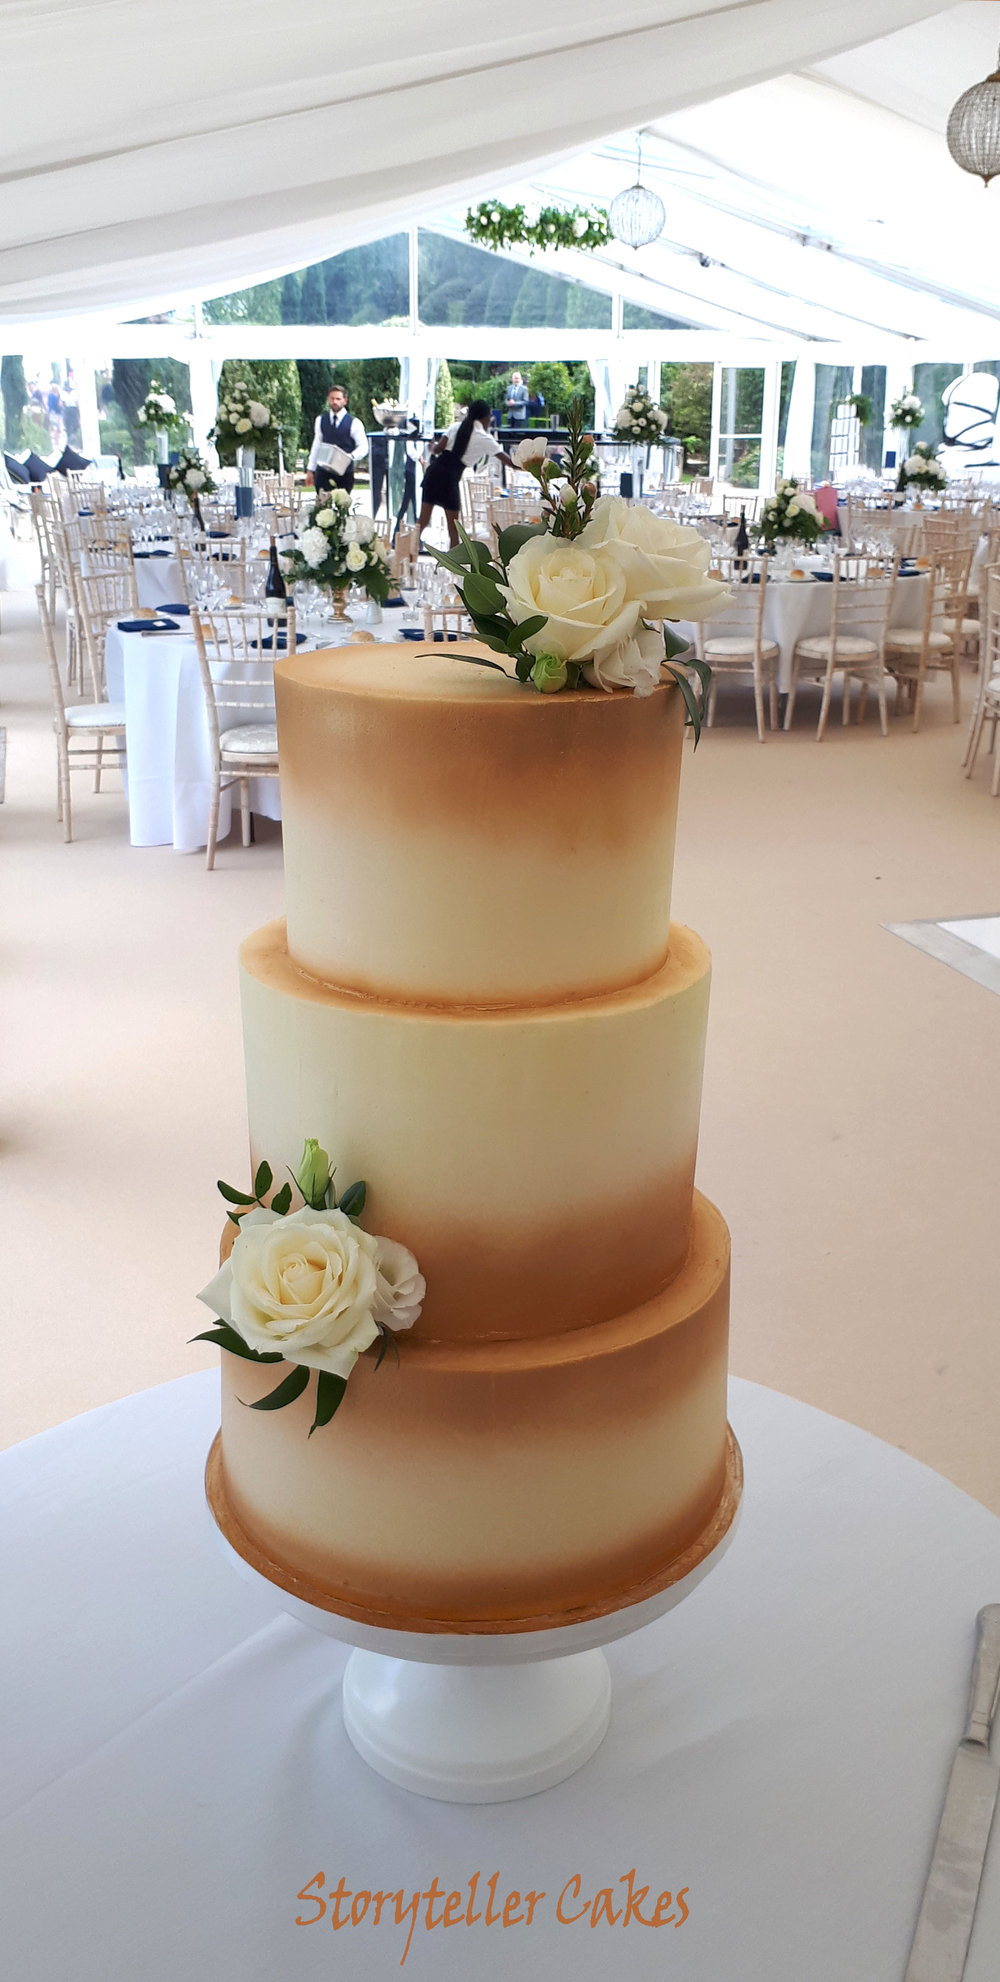 Gold and white buttercream rose wedding cake4.jpg